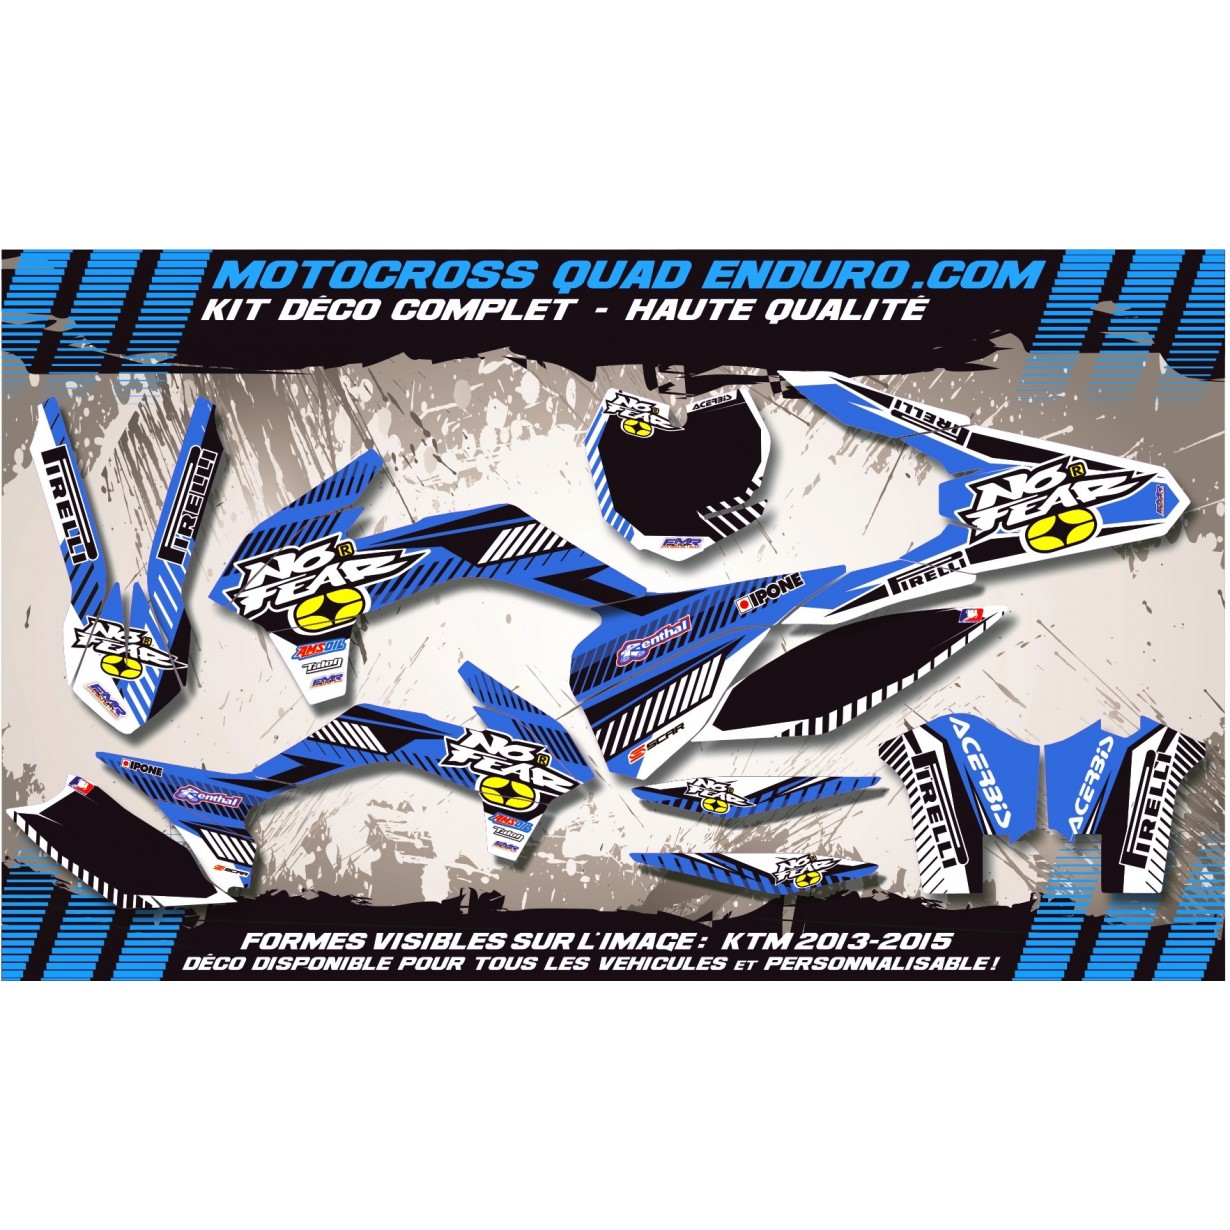 KIT DÉCO Perso 125-250 YZ UFO LOOK 4T 02-14 NO FEAR MA5E